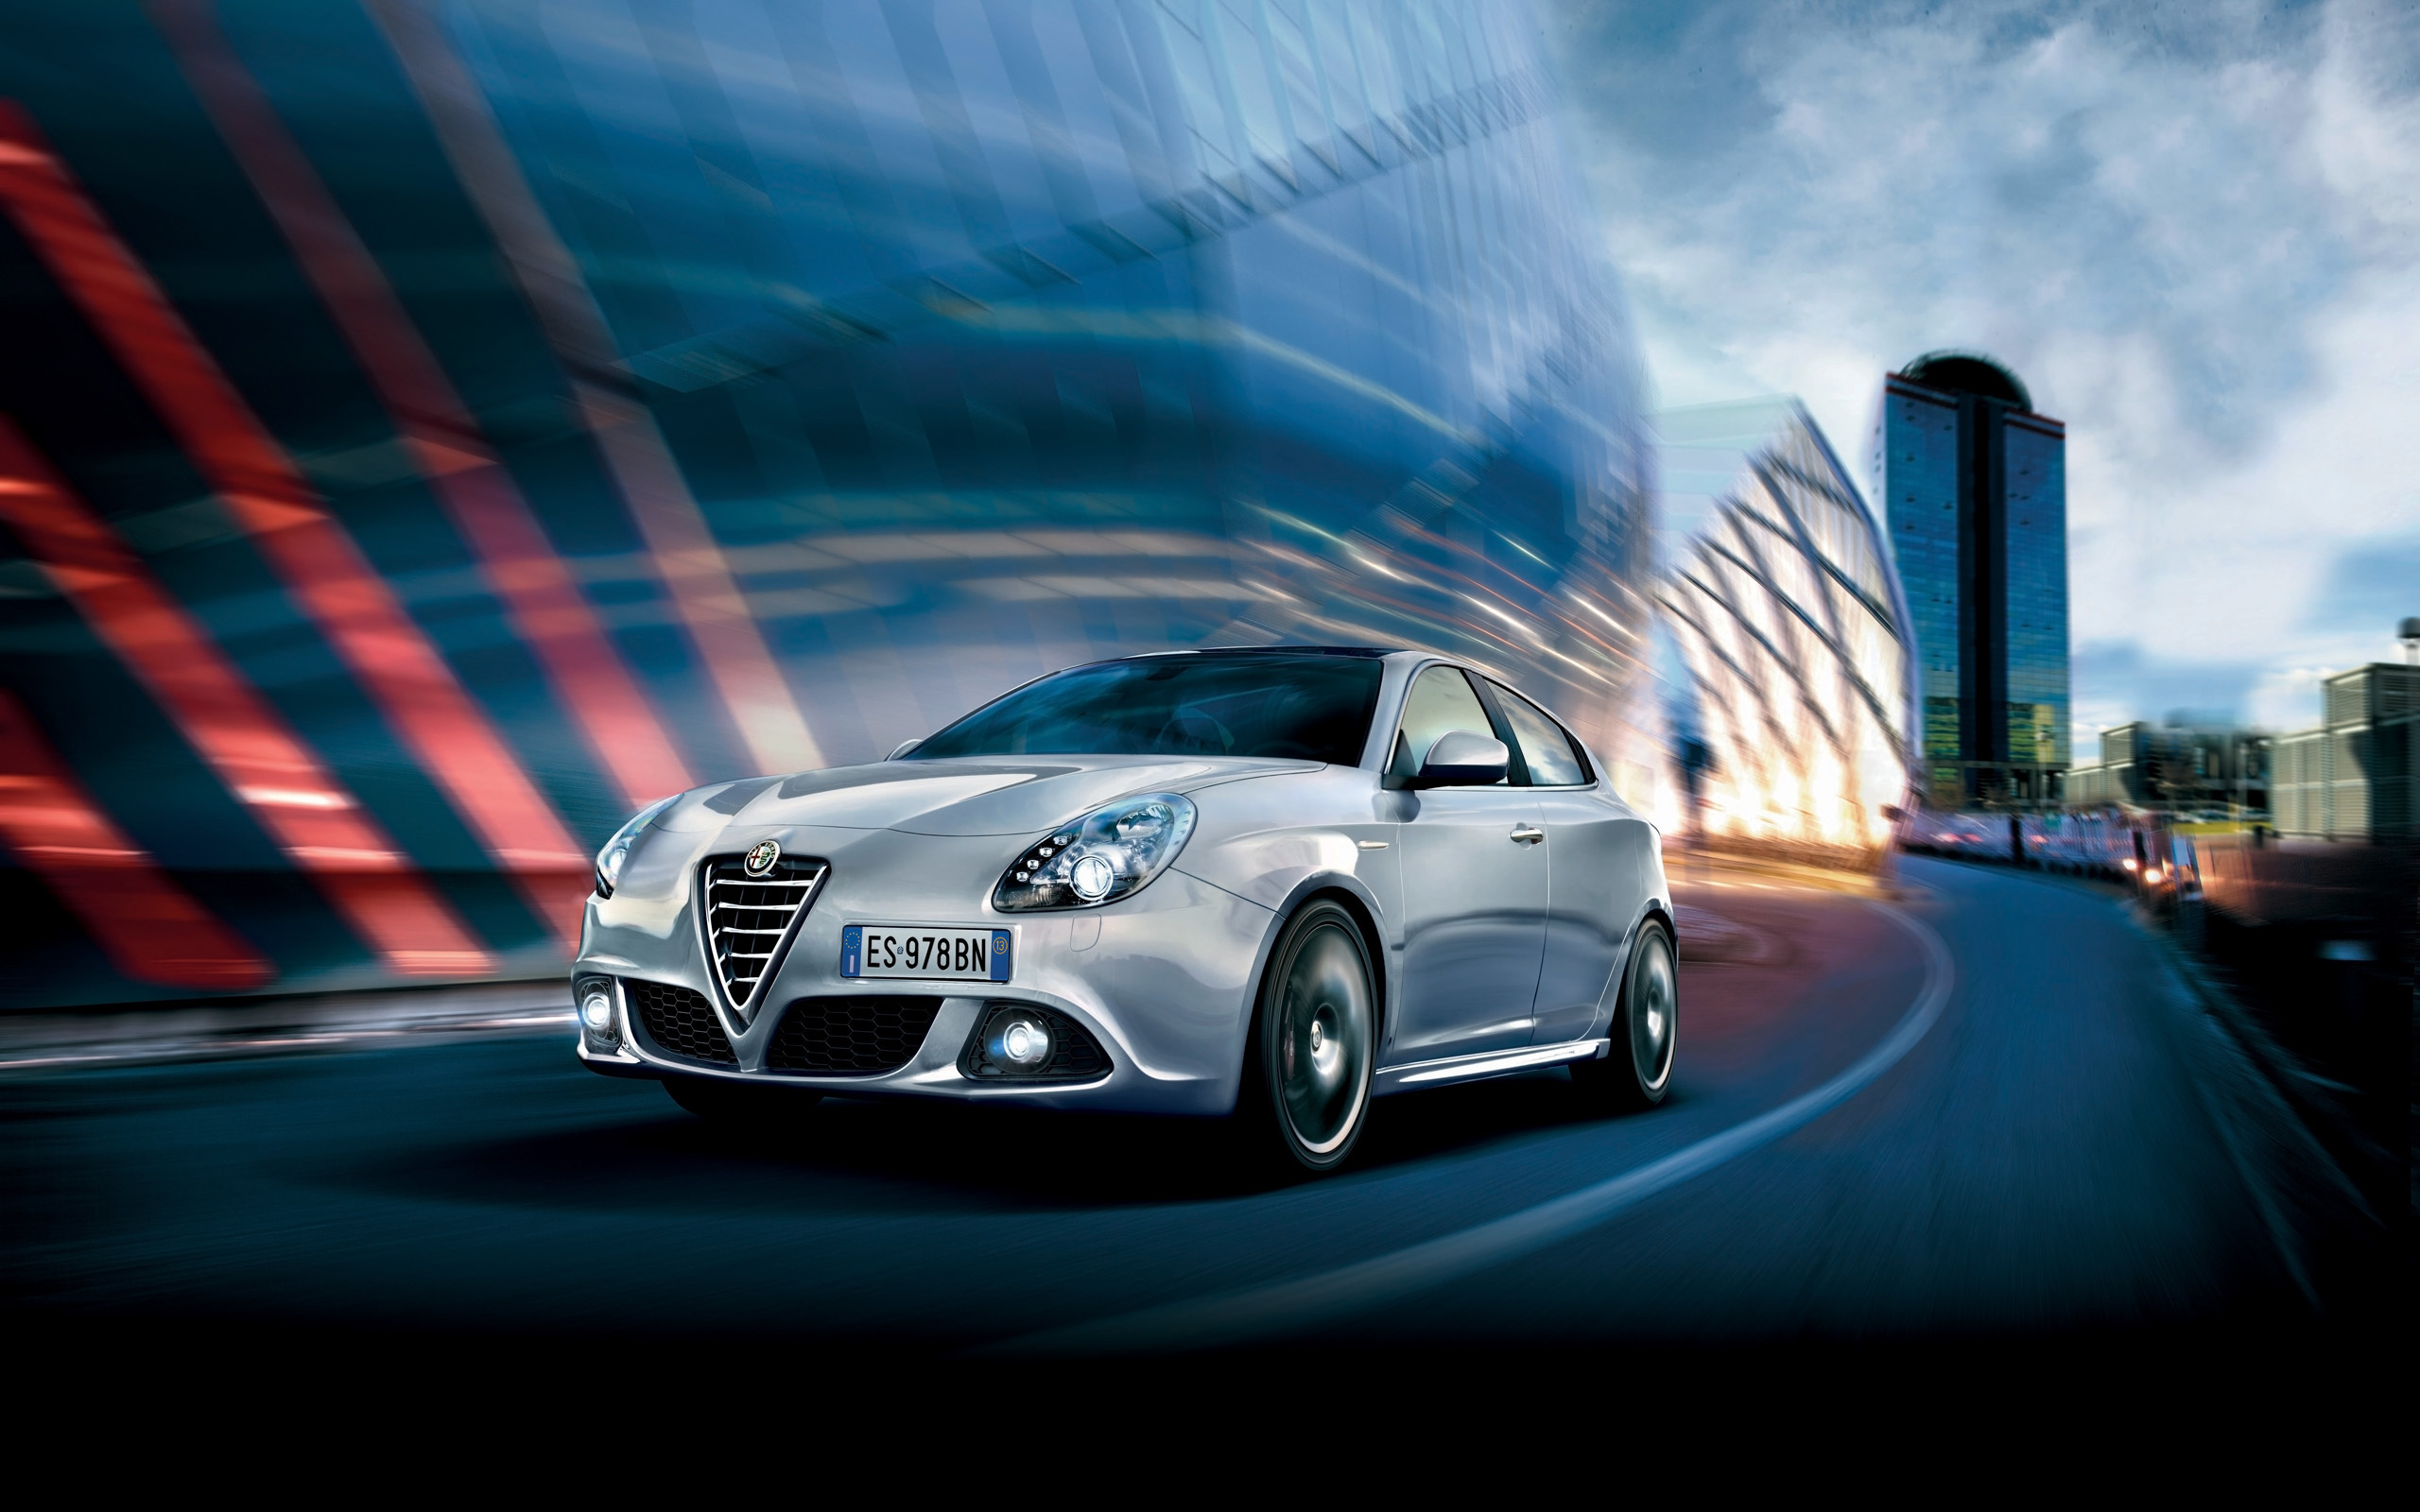 2014 Alfa Romeo Giulietta Wallpaper Hd Car Wallpapers Id